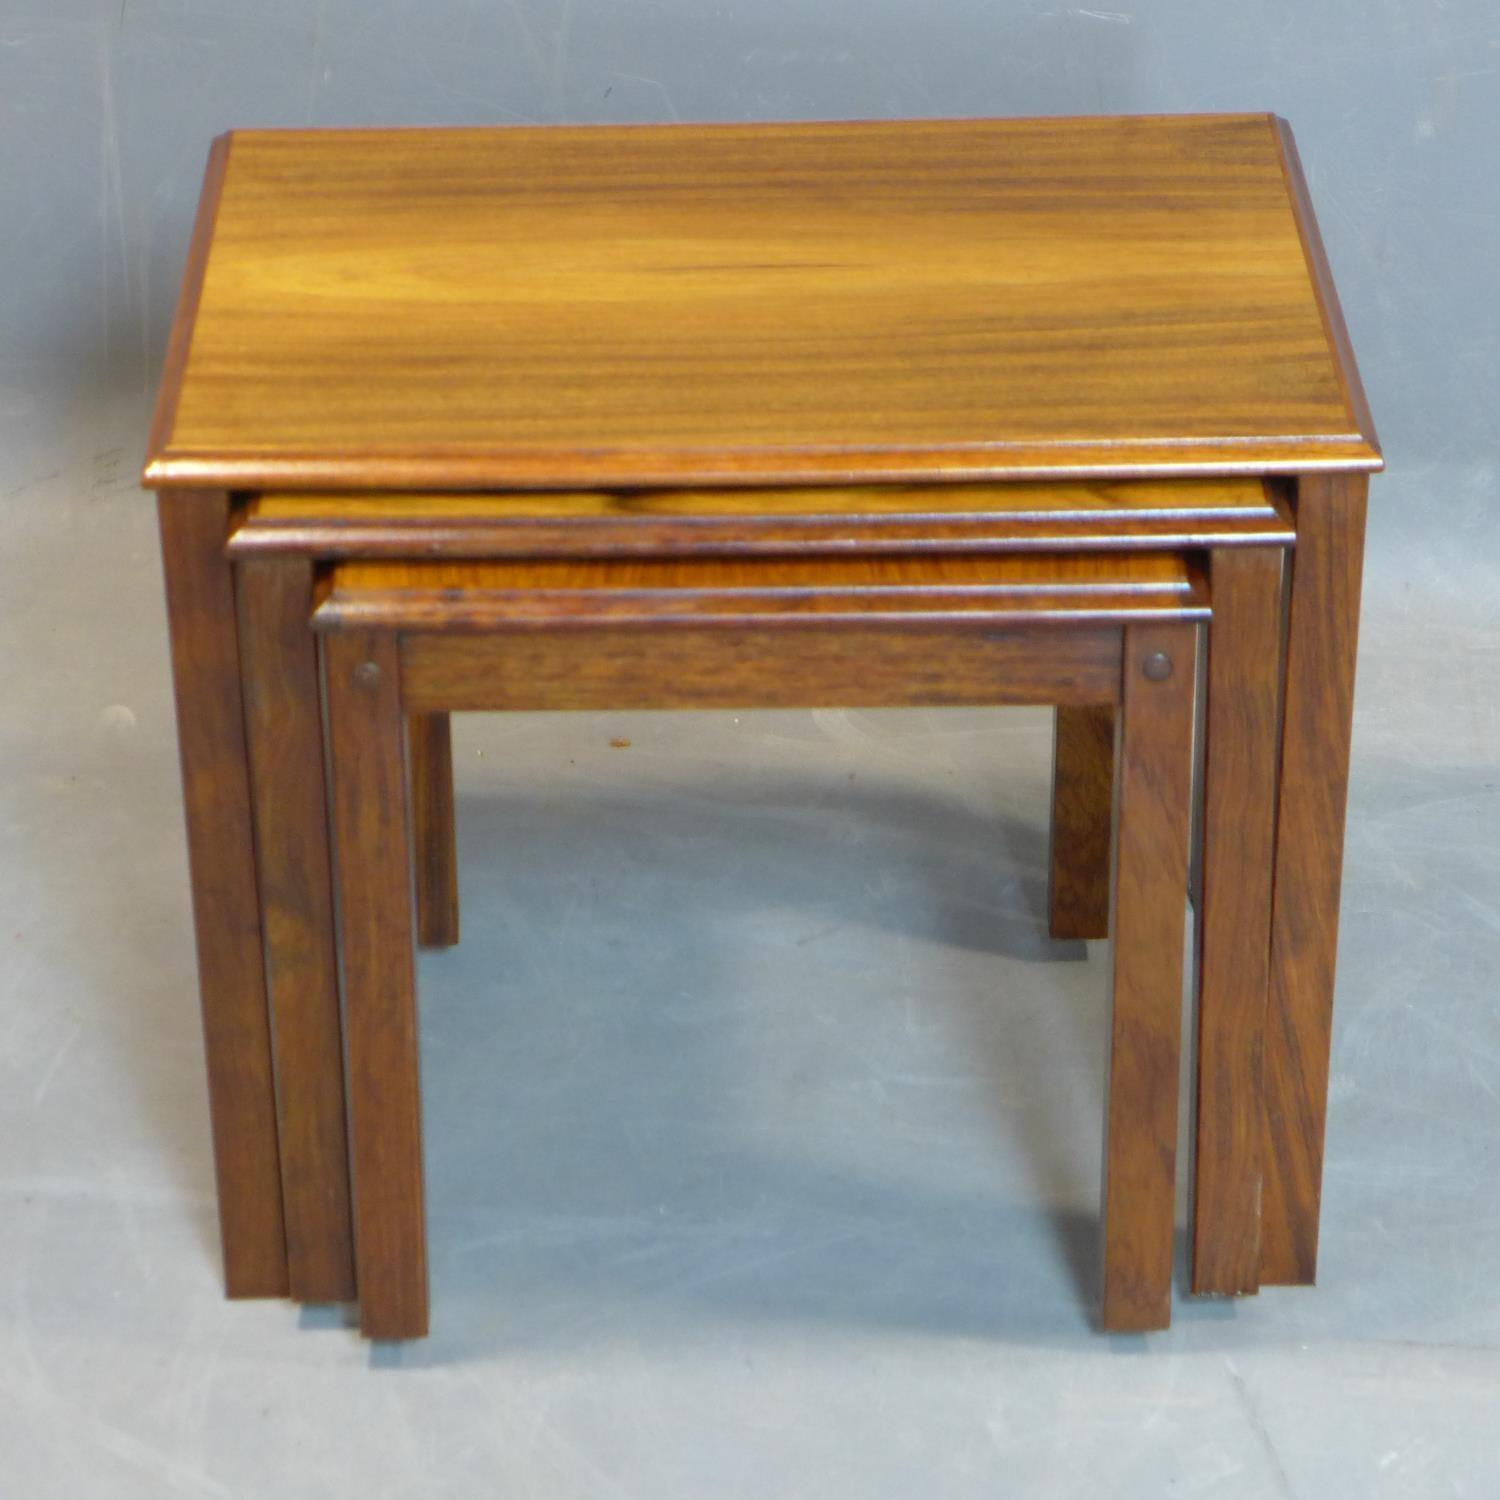 A nest of three Danish exotic hardwood tables, marked 'Made in Denmark' to bases, H.46 W.54 D.39cm - Image 2 of 3